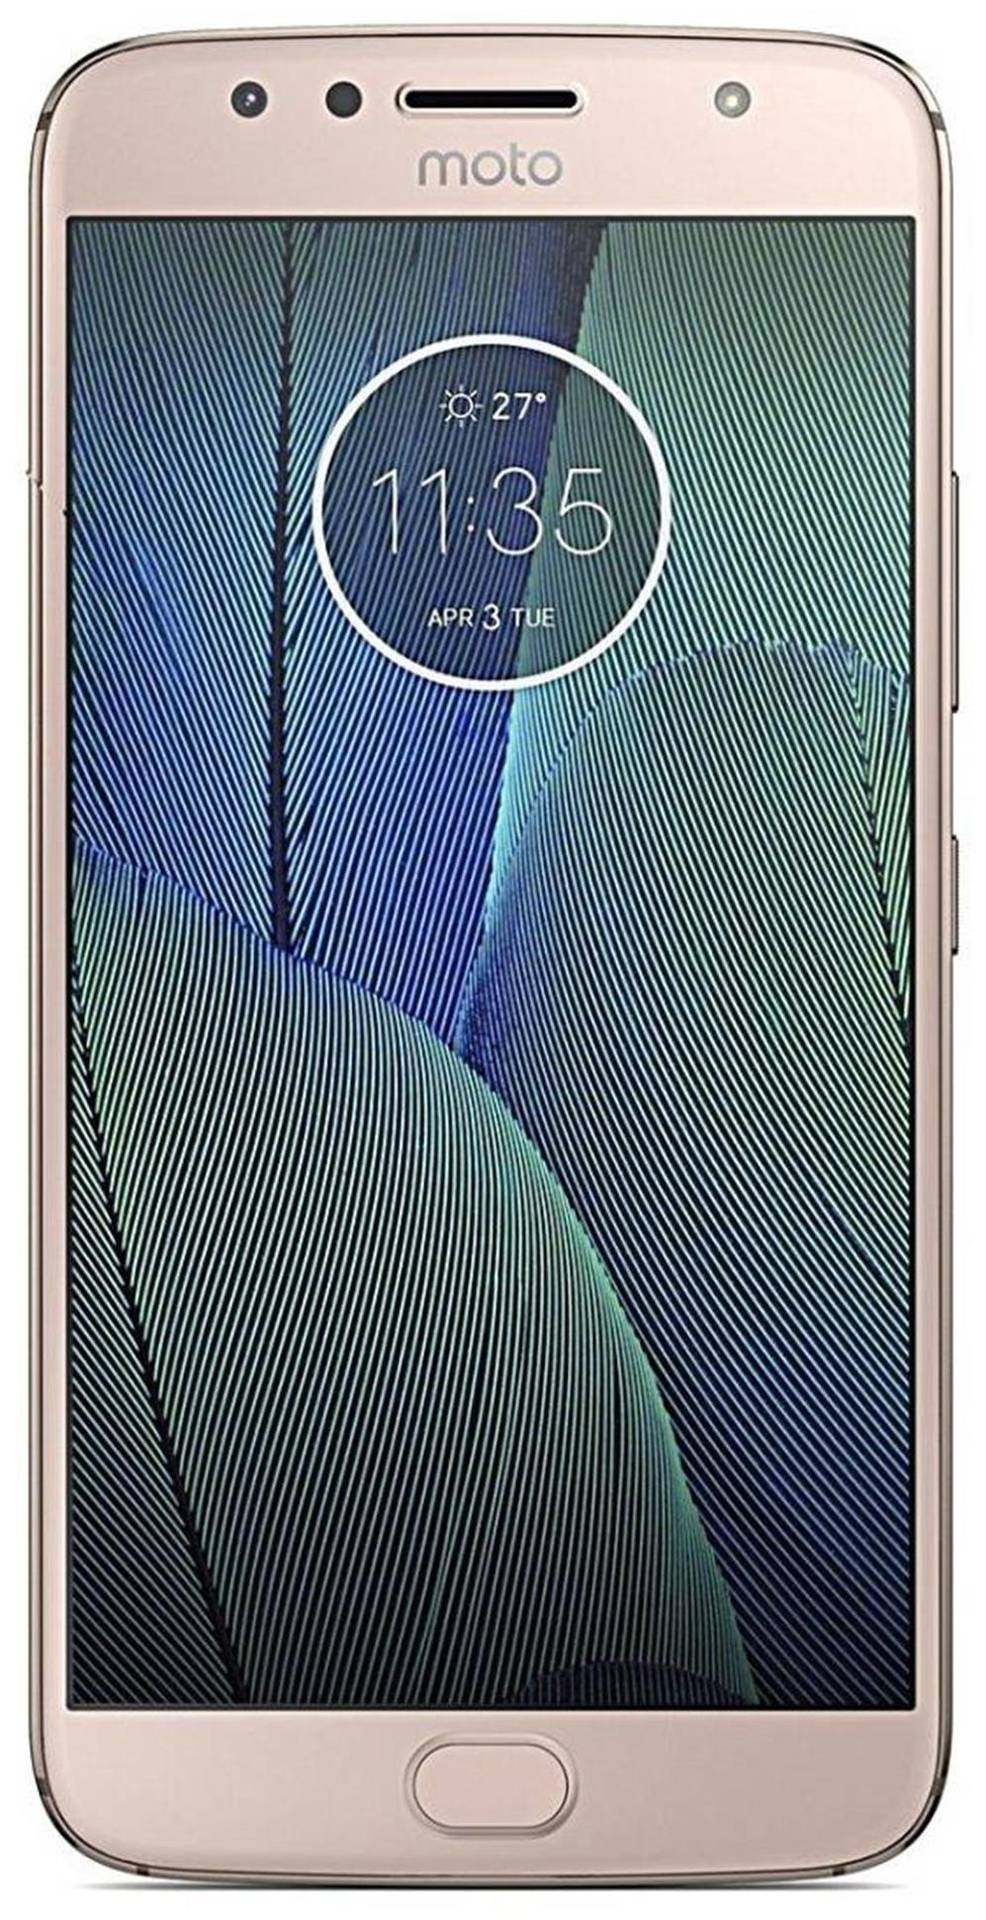 Moto G5s Plus 64 GB Blush Gold